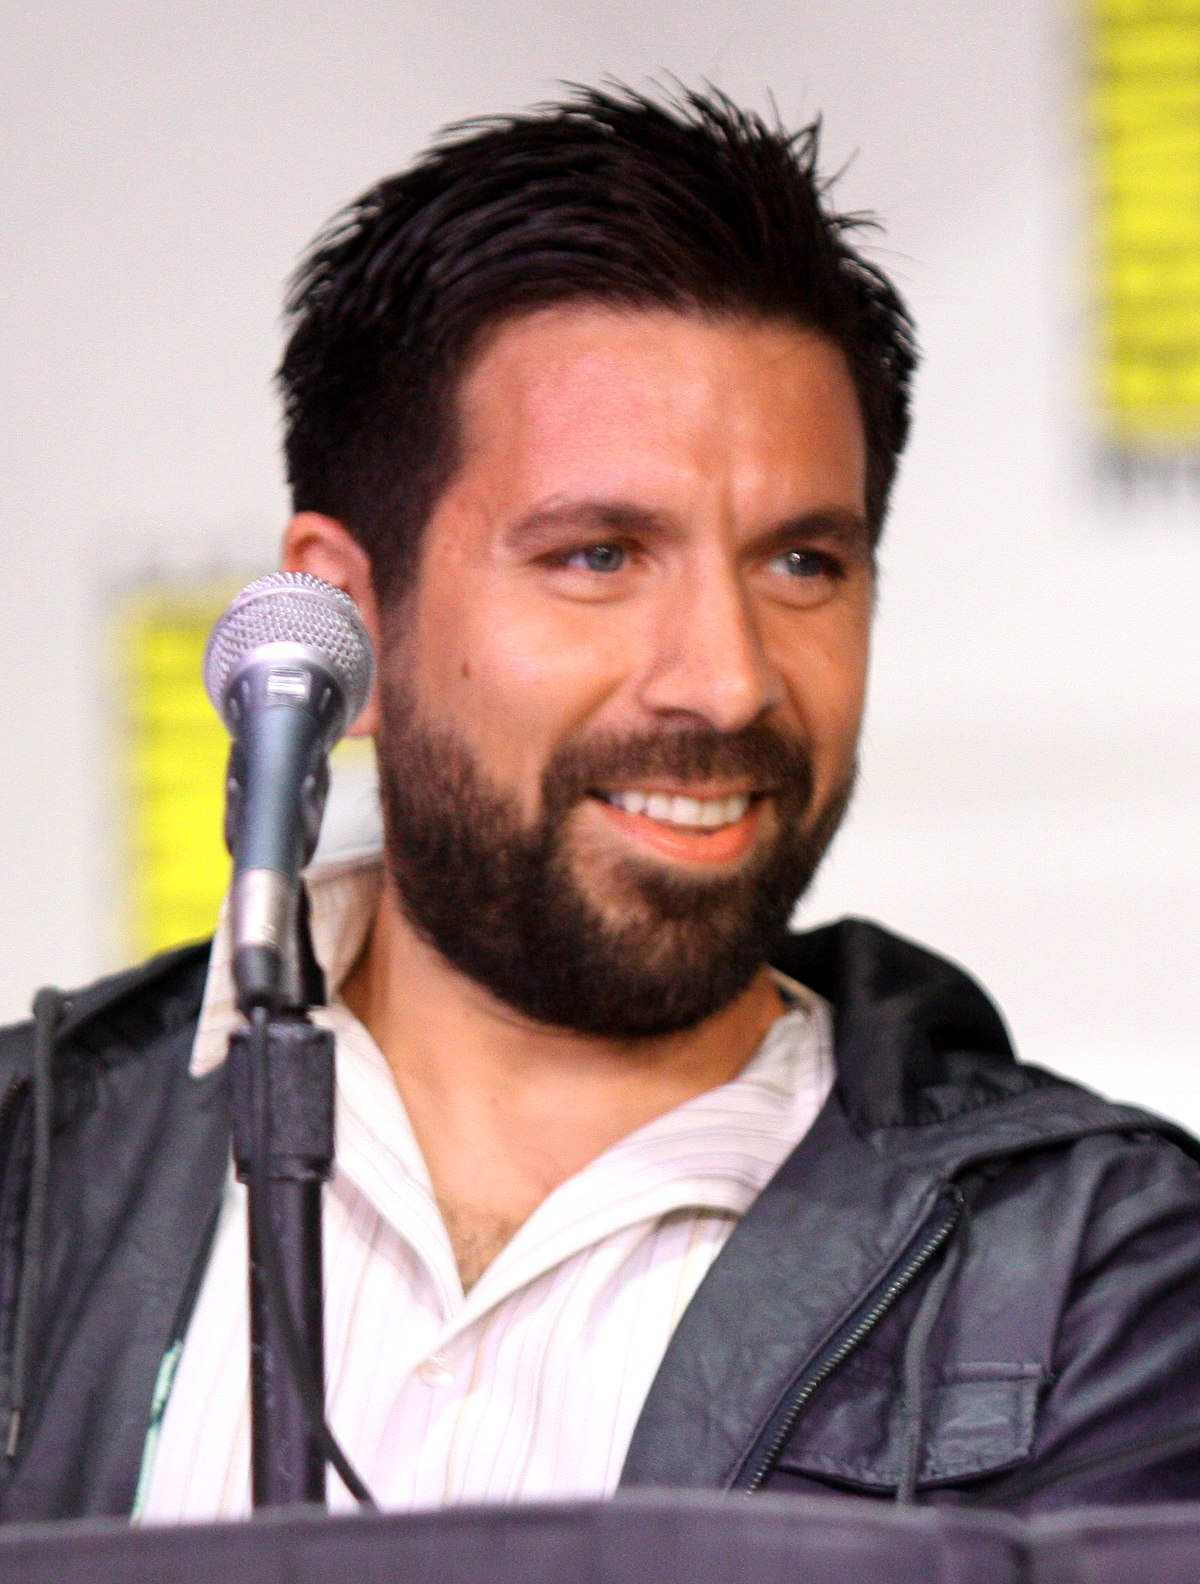 Joshua Gomez Wikipedia At the end of last season, morgan (joshua gomez) became the new intersect, and while it's been said that chuck will become a mentor of sorts, there's there's that whole growing process for morgan as the intersect, and like what happened with chuck, we don't know exactly what effect it's going to have. joshua gomez wikipedia